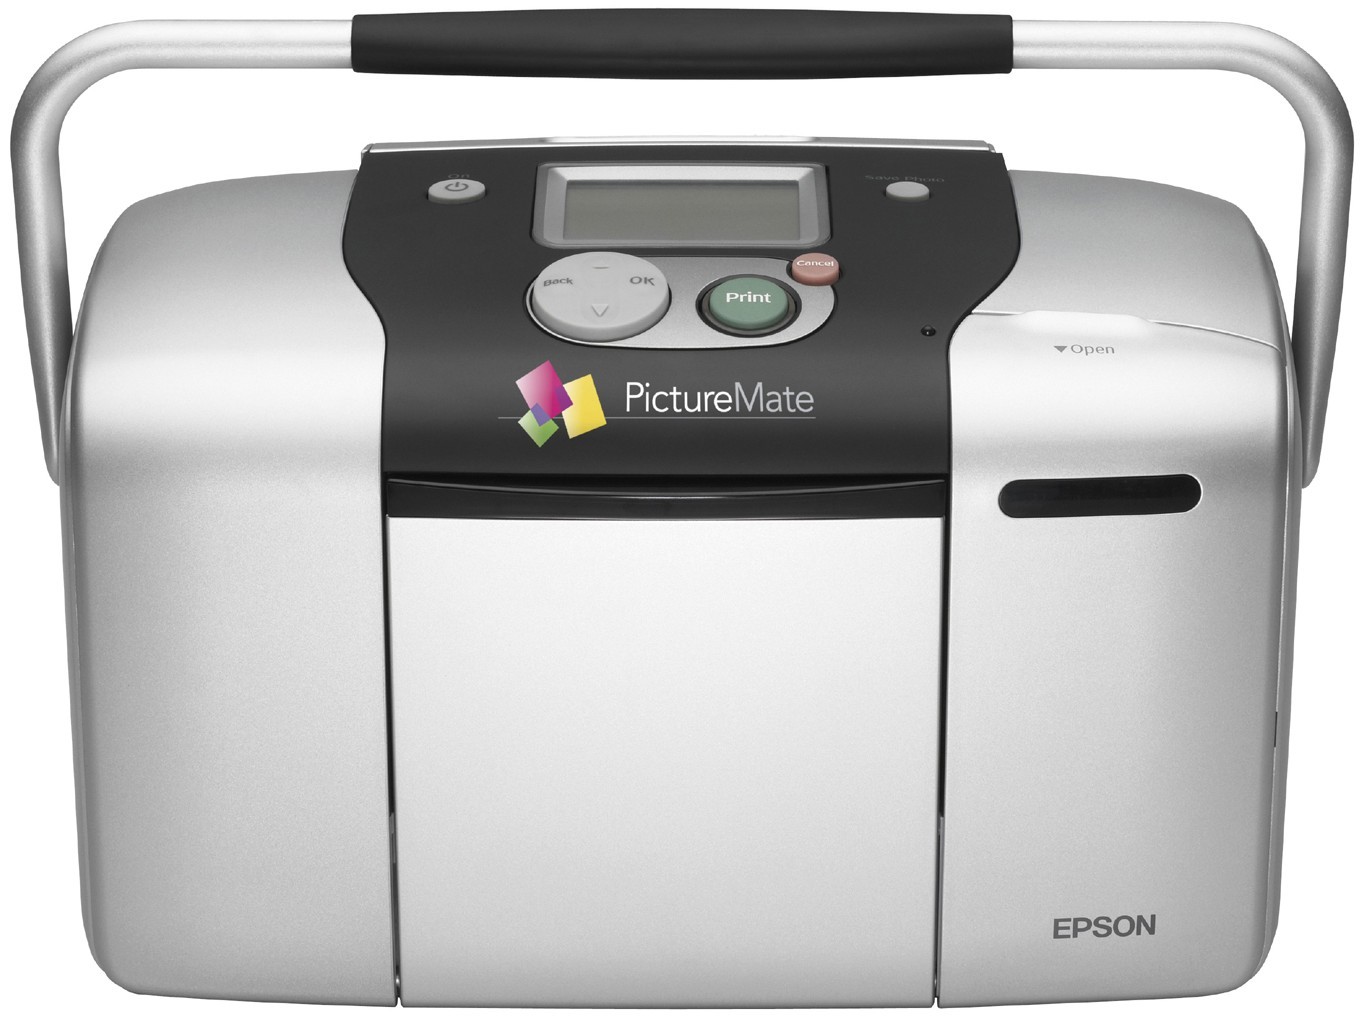 Step-by-step Driver Epson Printer Picturemate Fedora Installation -  Featured